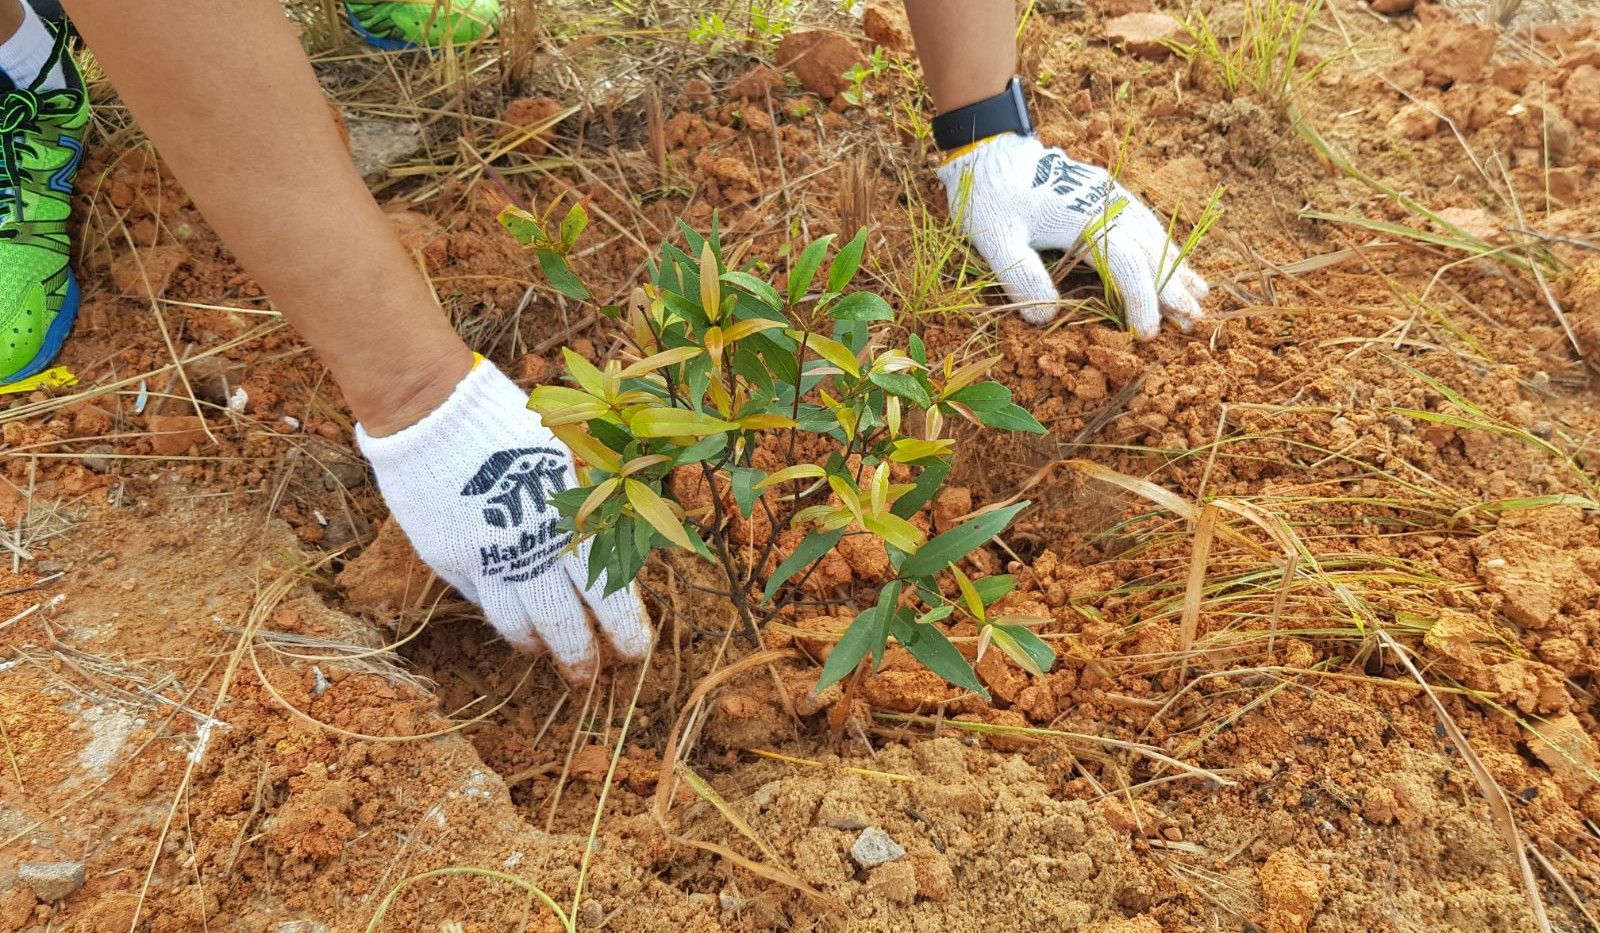 4b2cfbf8-f806-4d92-88fdCycle Out Poverty 2018 Tree Planting-2d767540c813.JPG